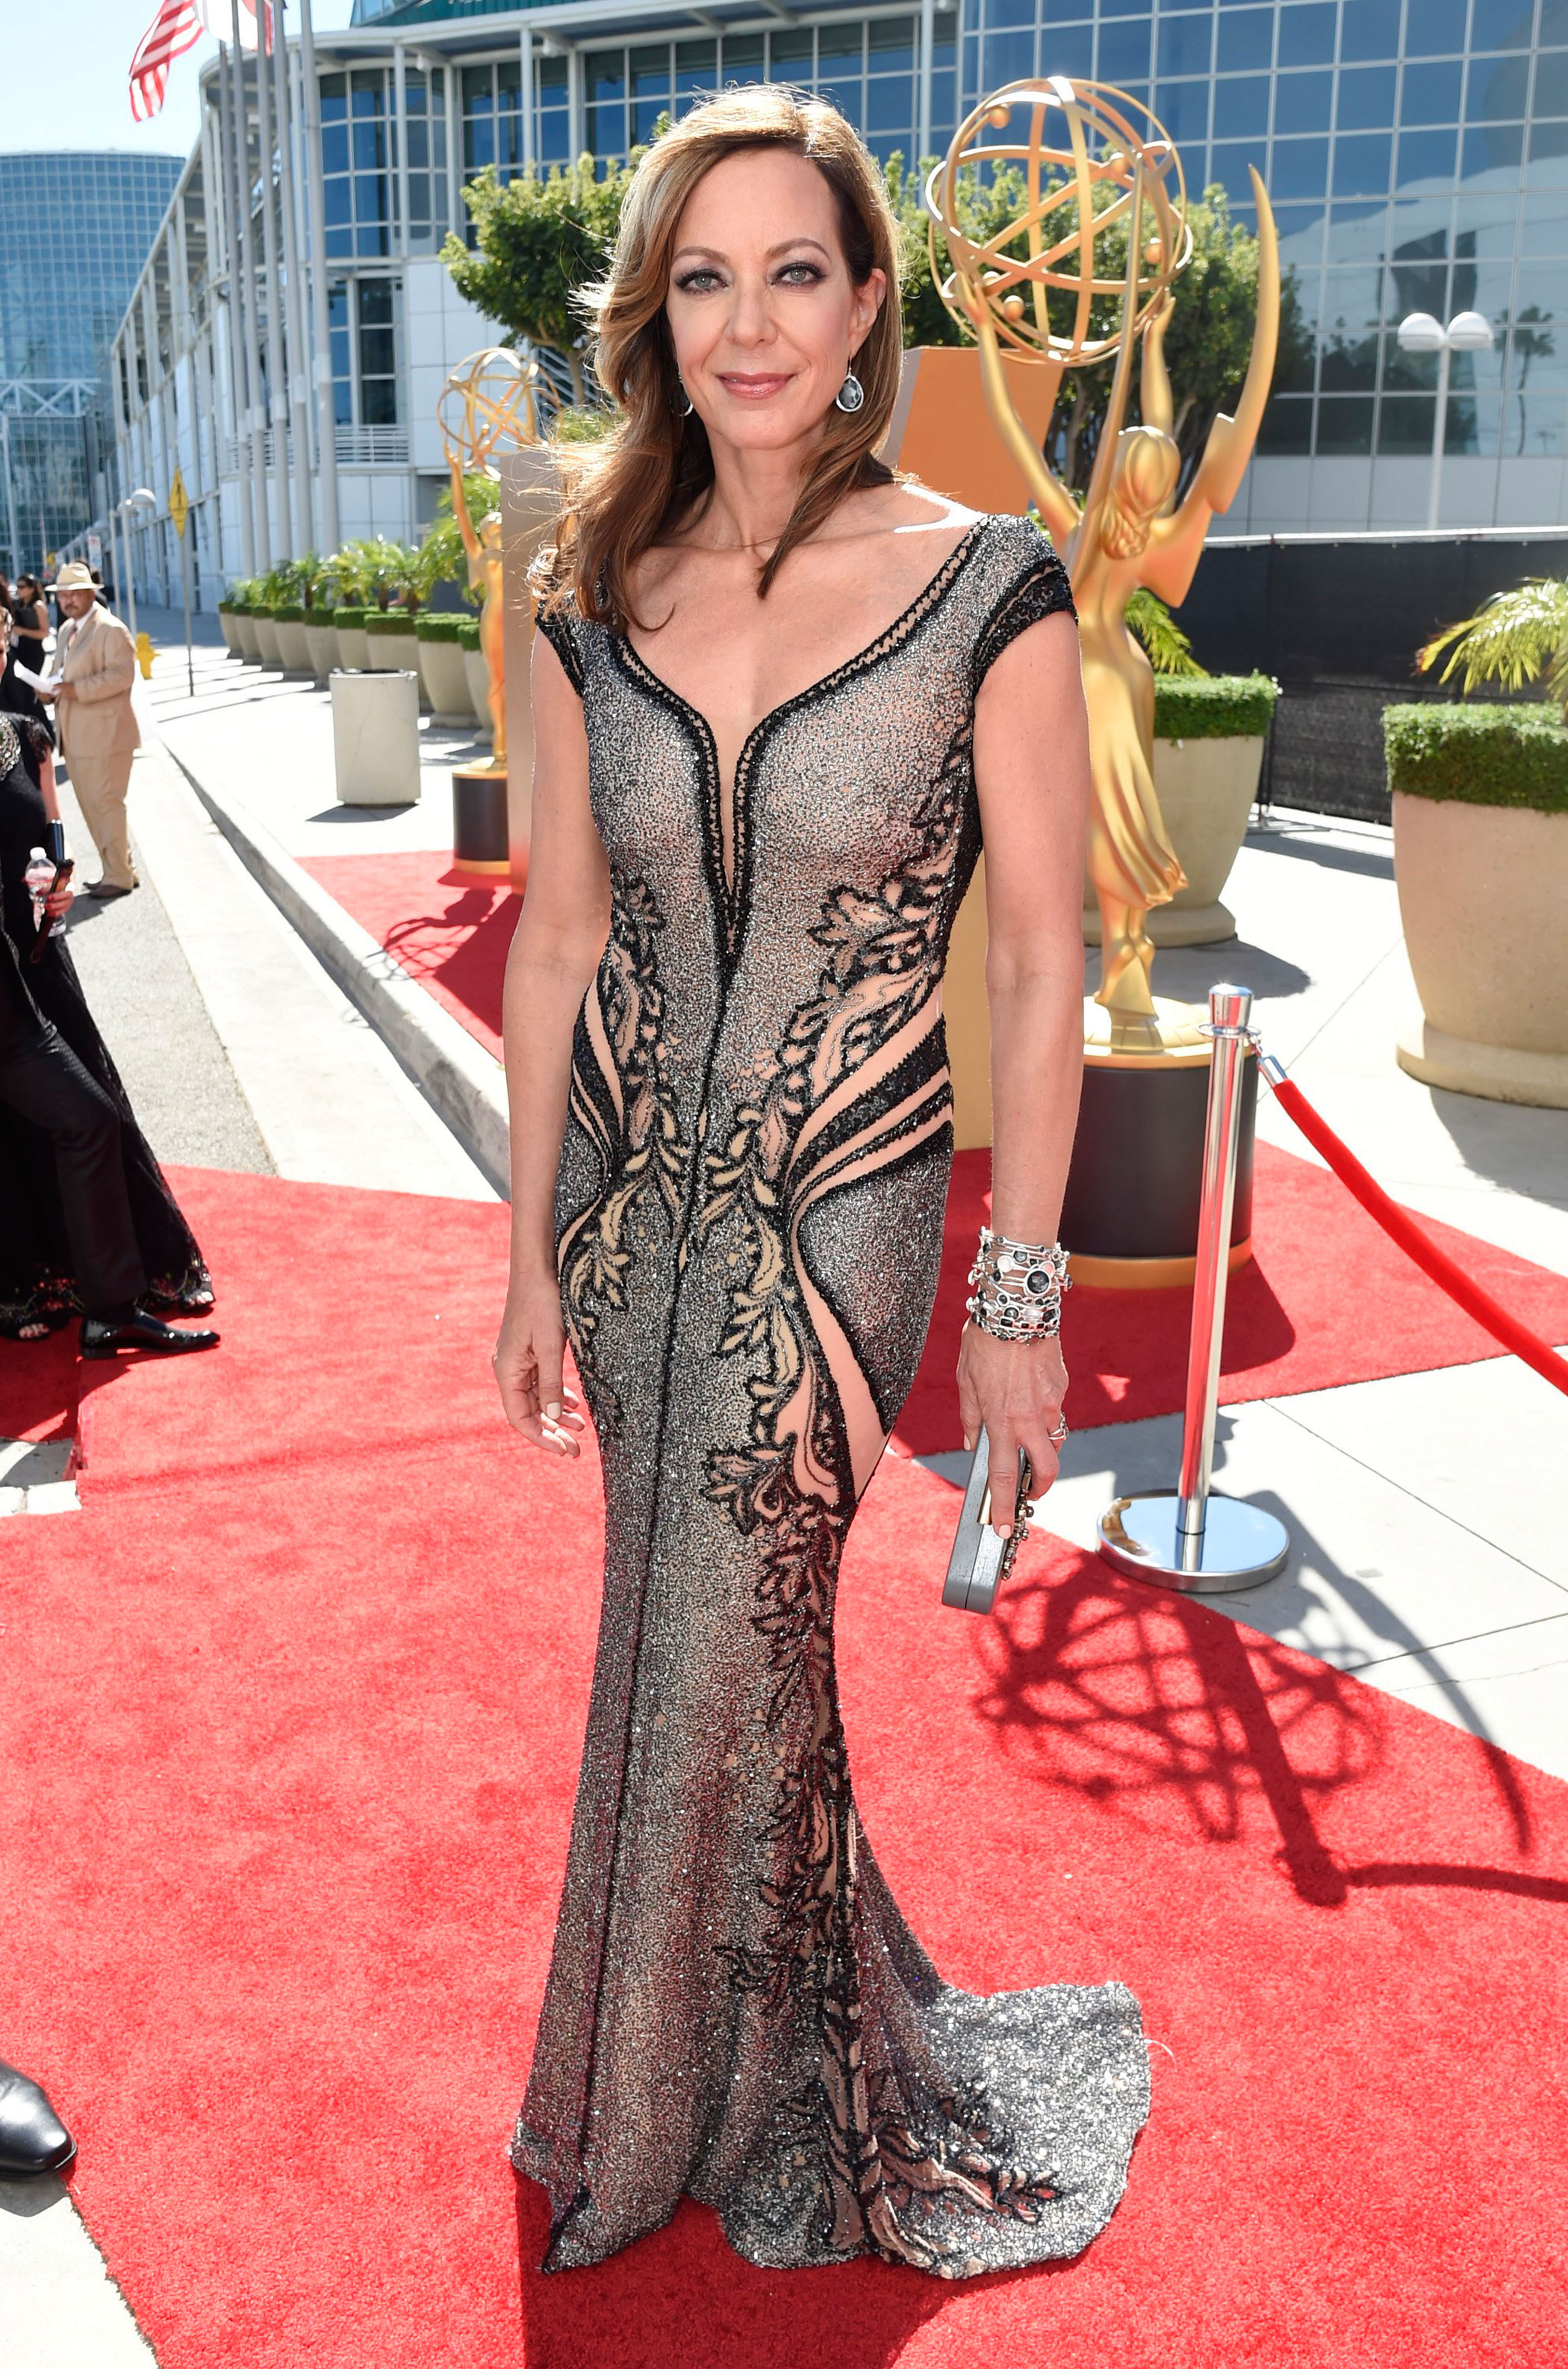 Allison Janney at the 67th Emmy Award on Sept. 20, 2015 in Los Angeles.